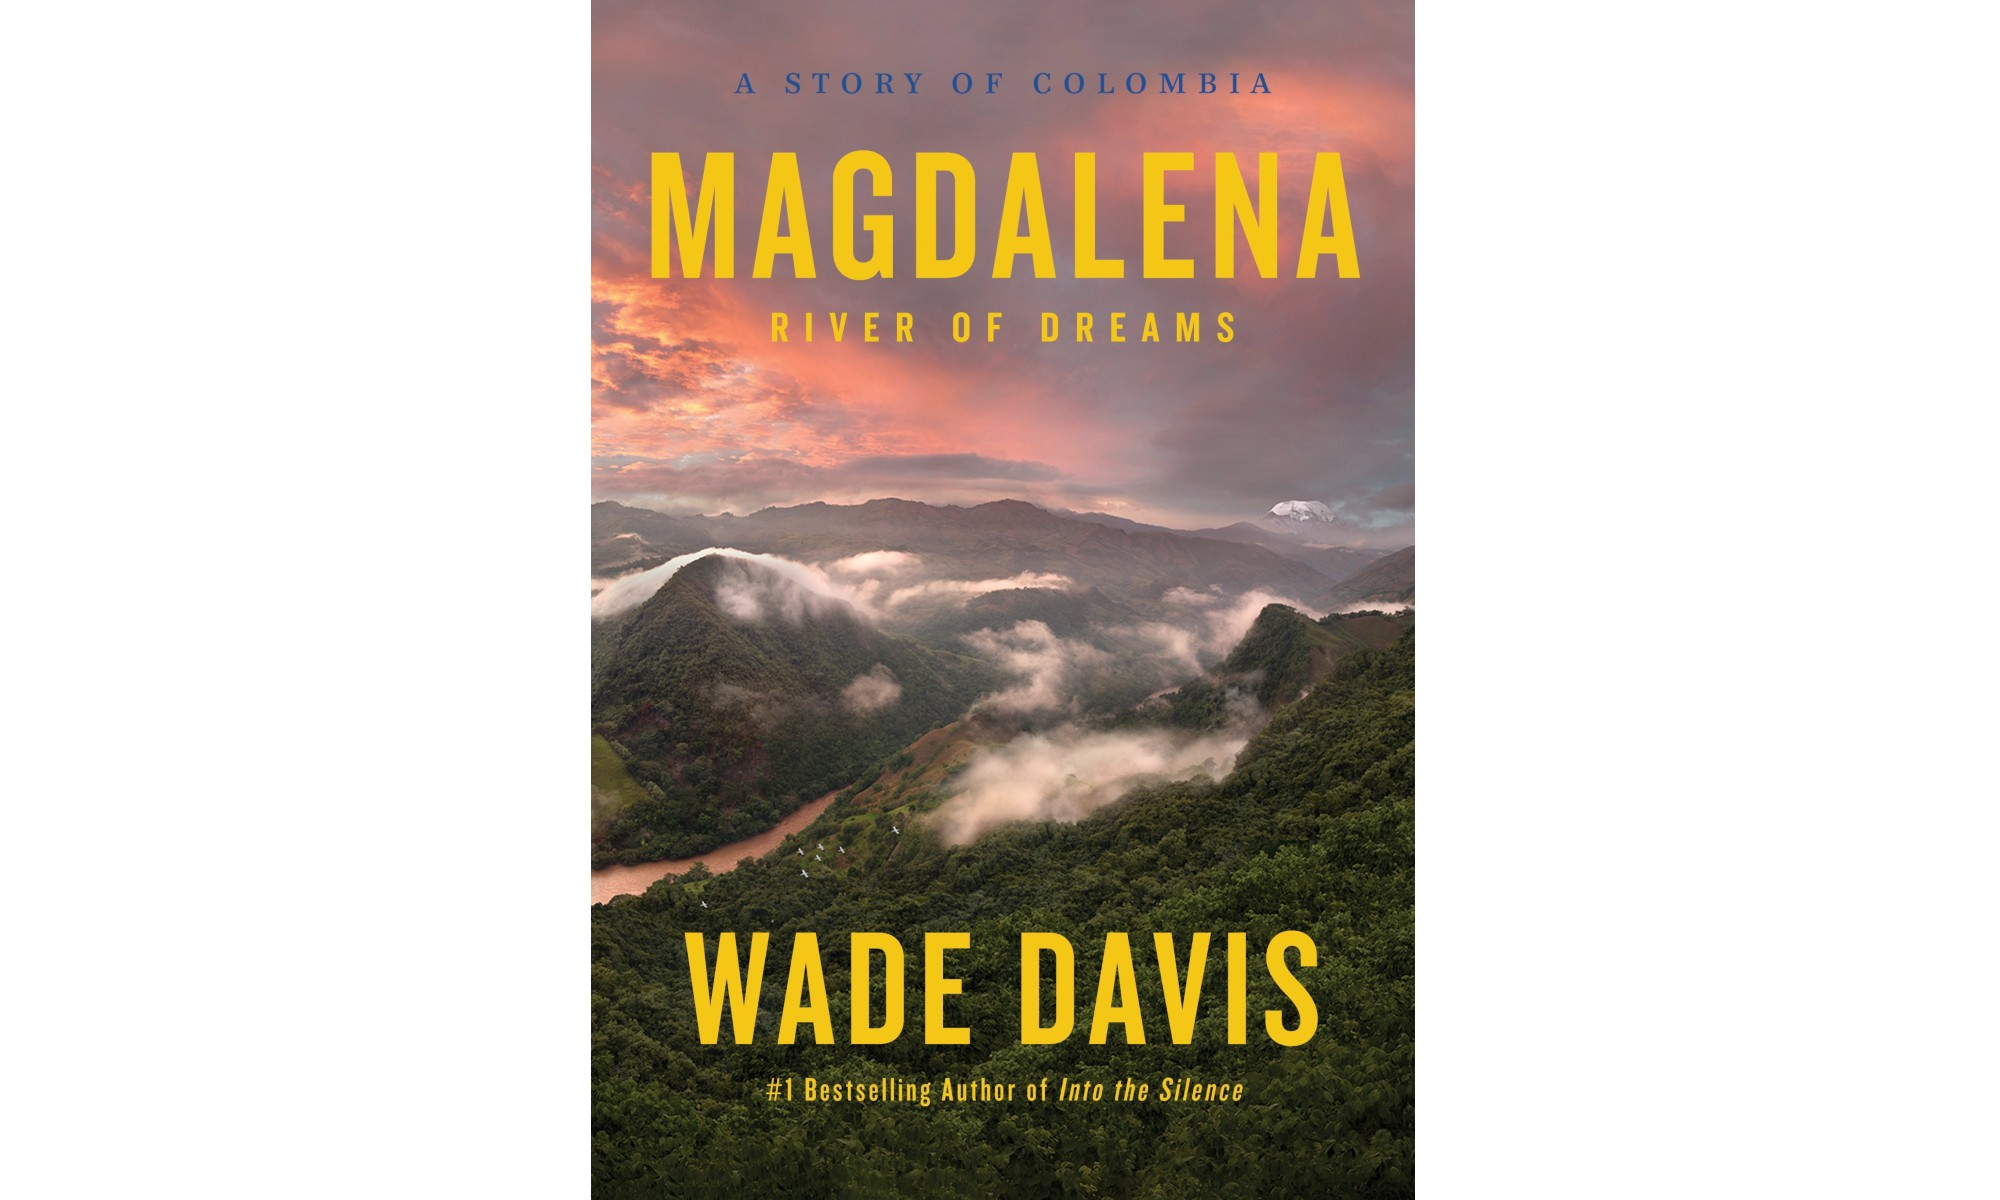 The cover of Wade Davis's book Magdalena featuring a pink sky over a mountainscape